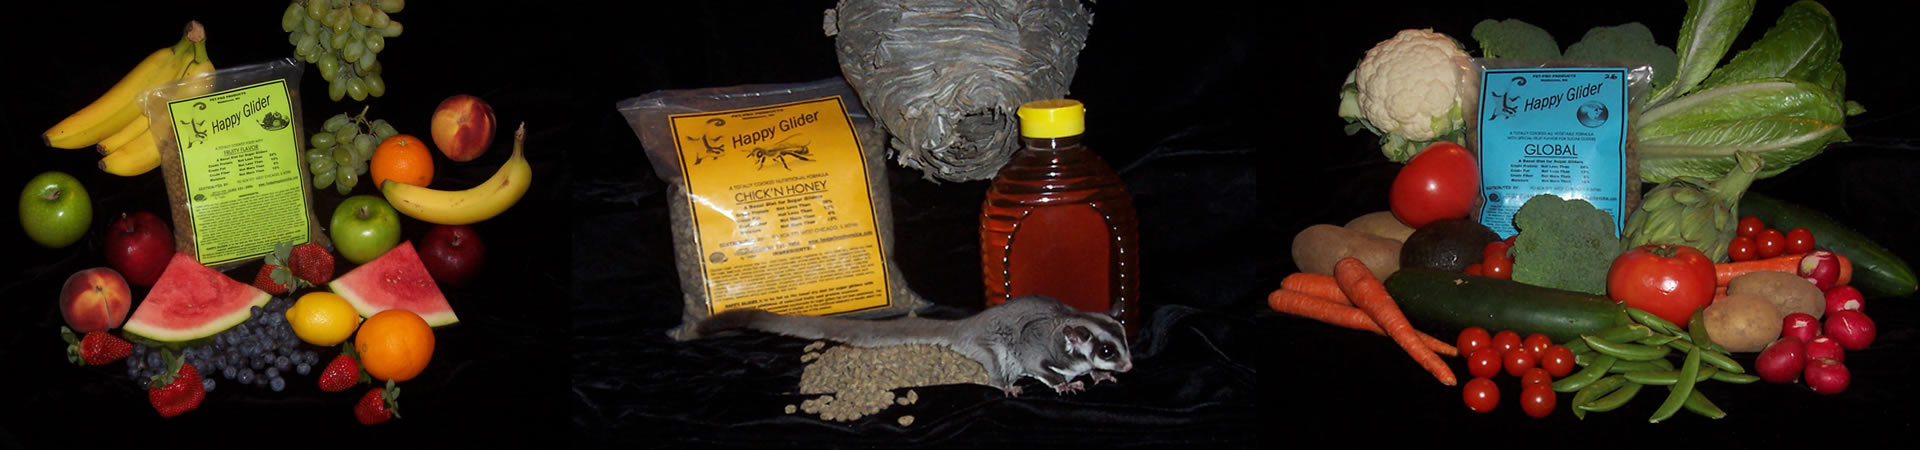 "We Carry ""Happy GLIDER"" Sugar Glider Food"